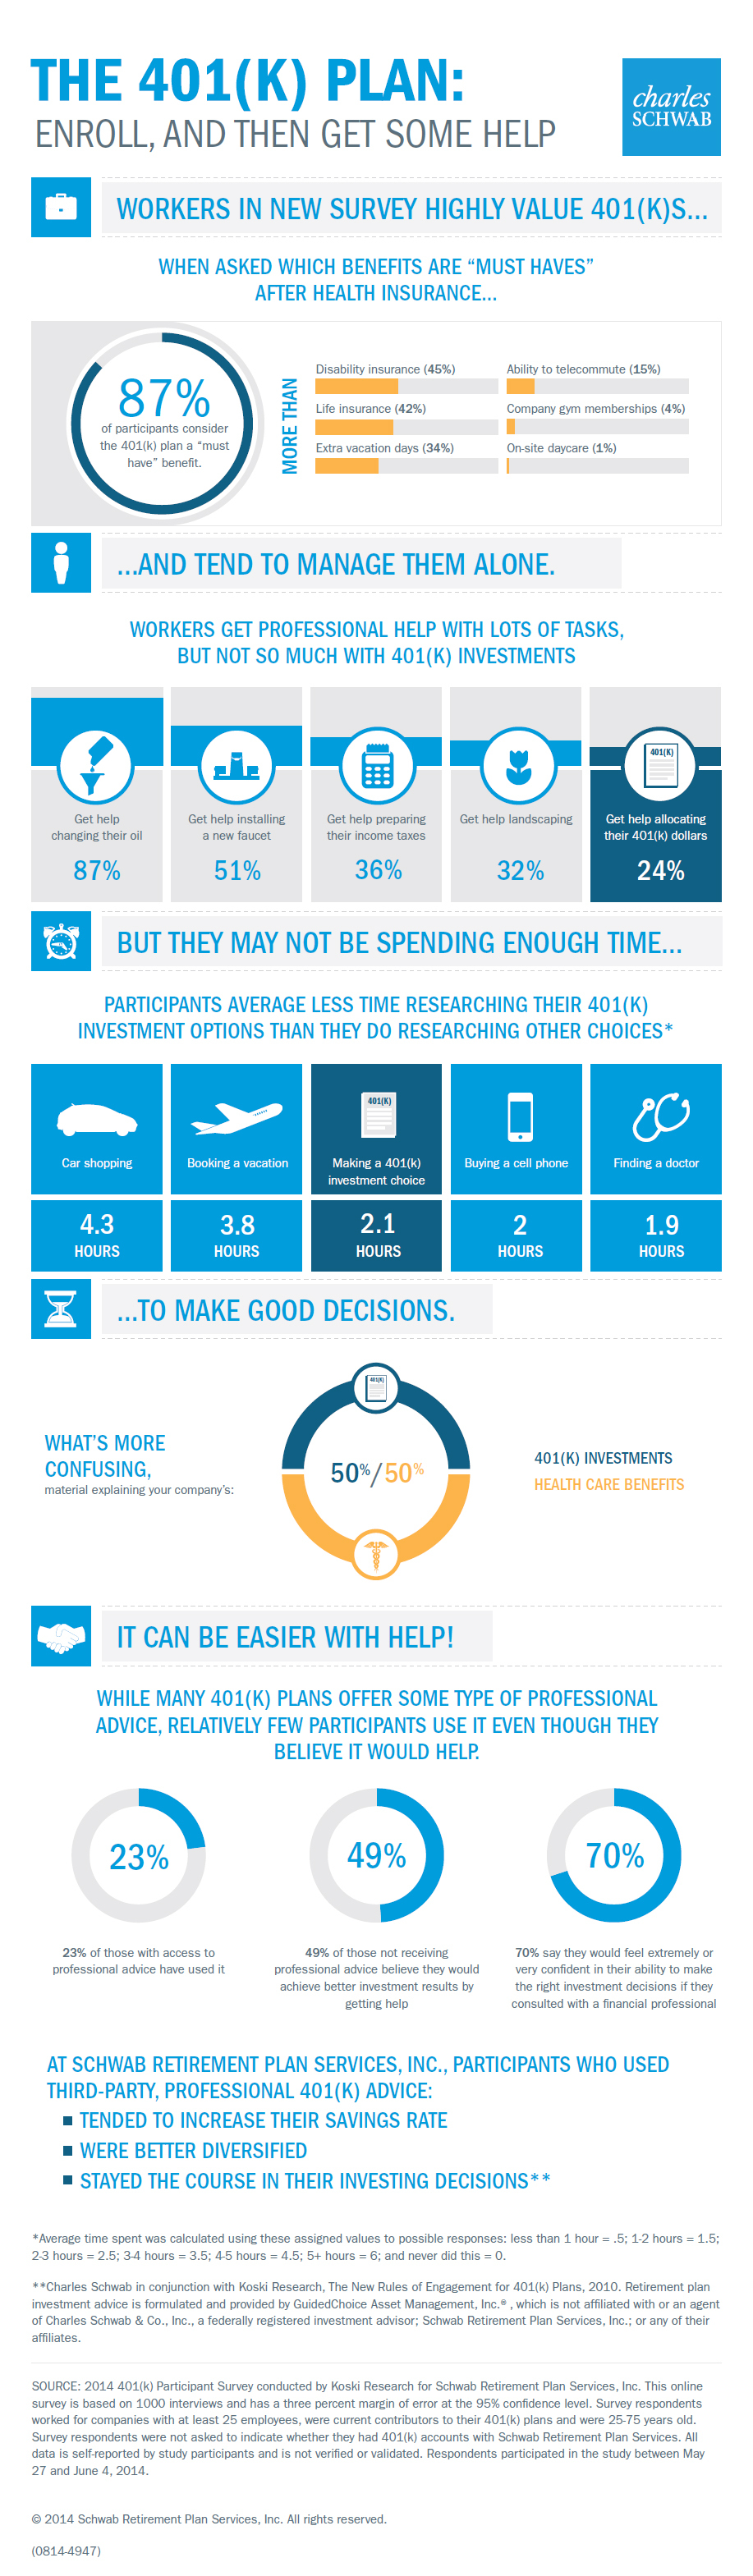 NEW SURVEY: THE 401(K) PLAN (Infographic provided by Schwab)